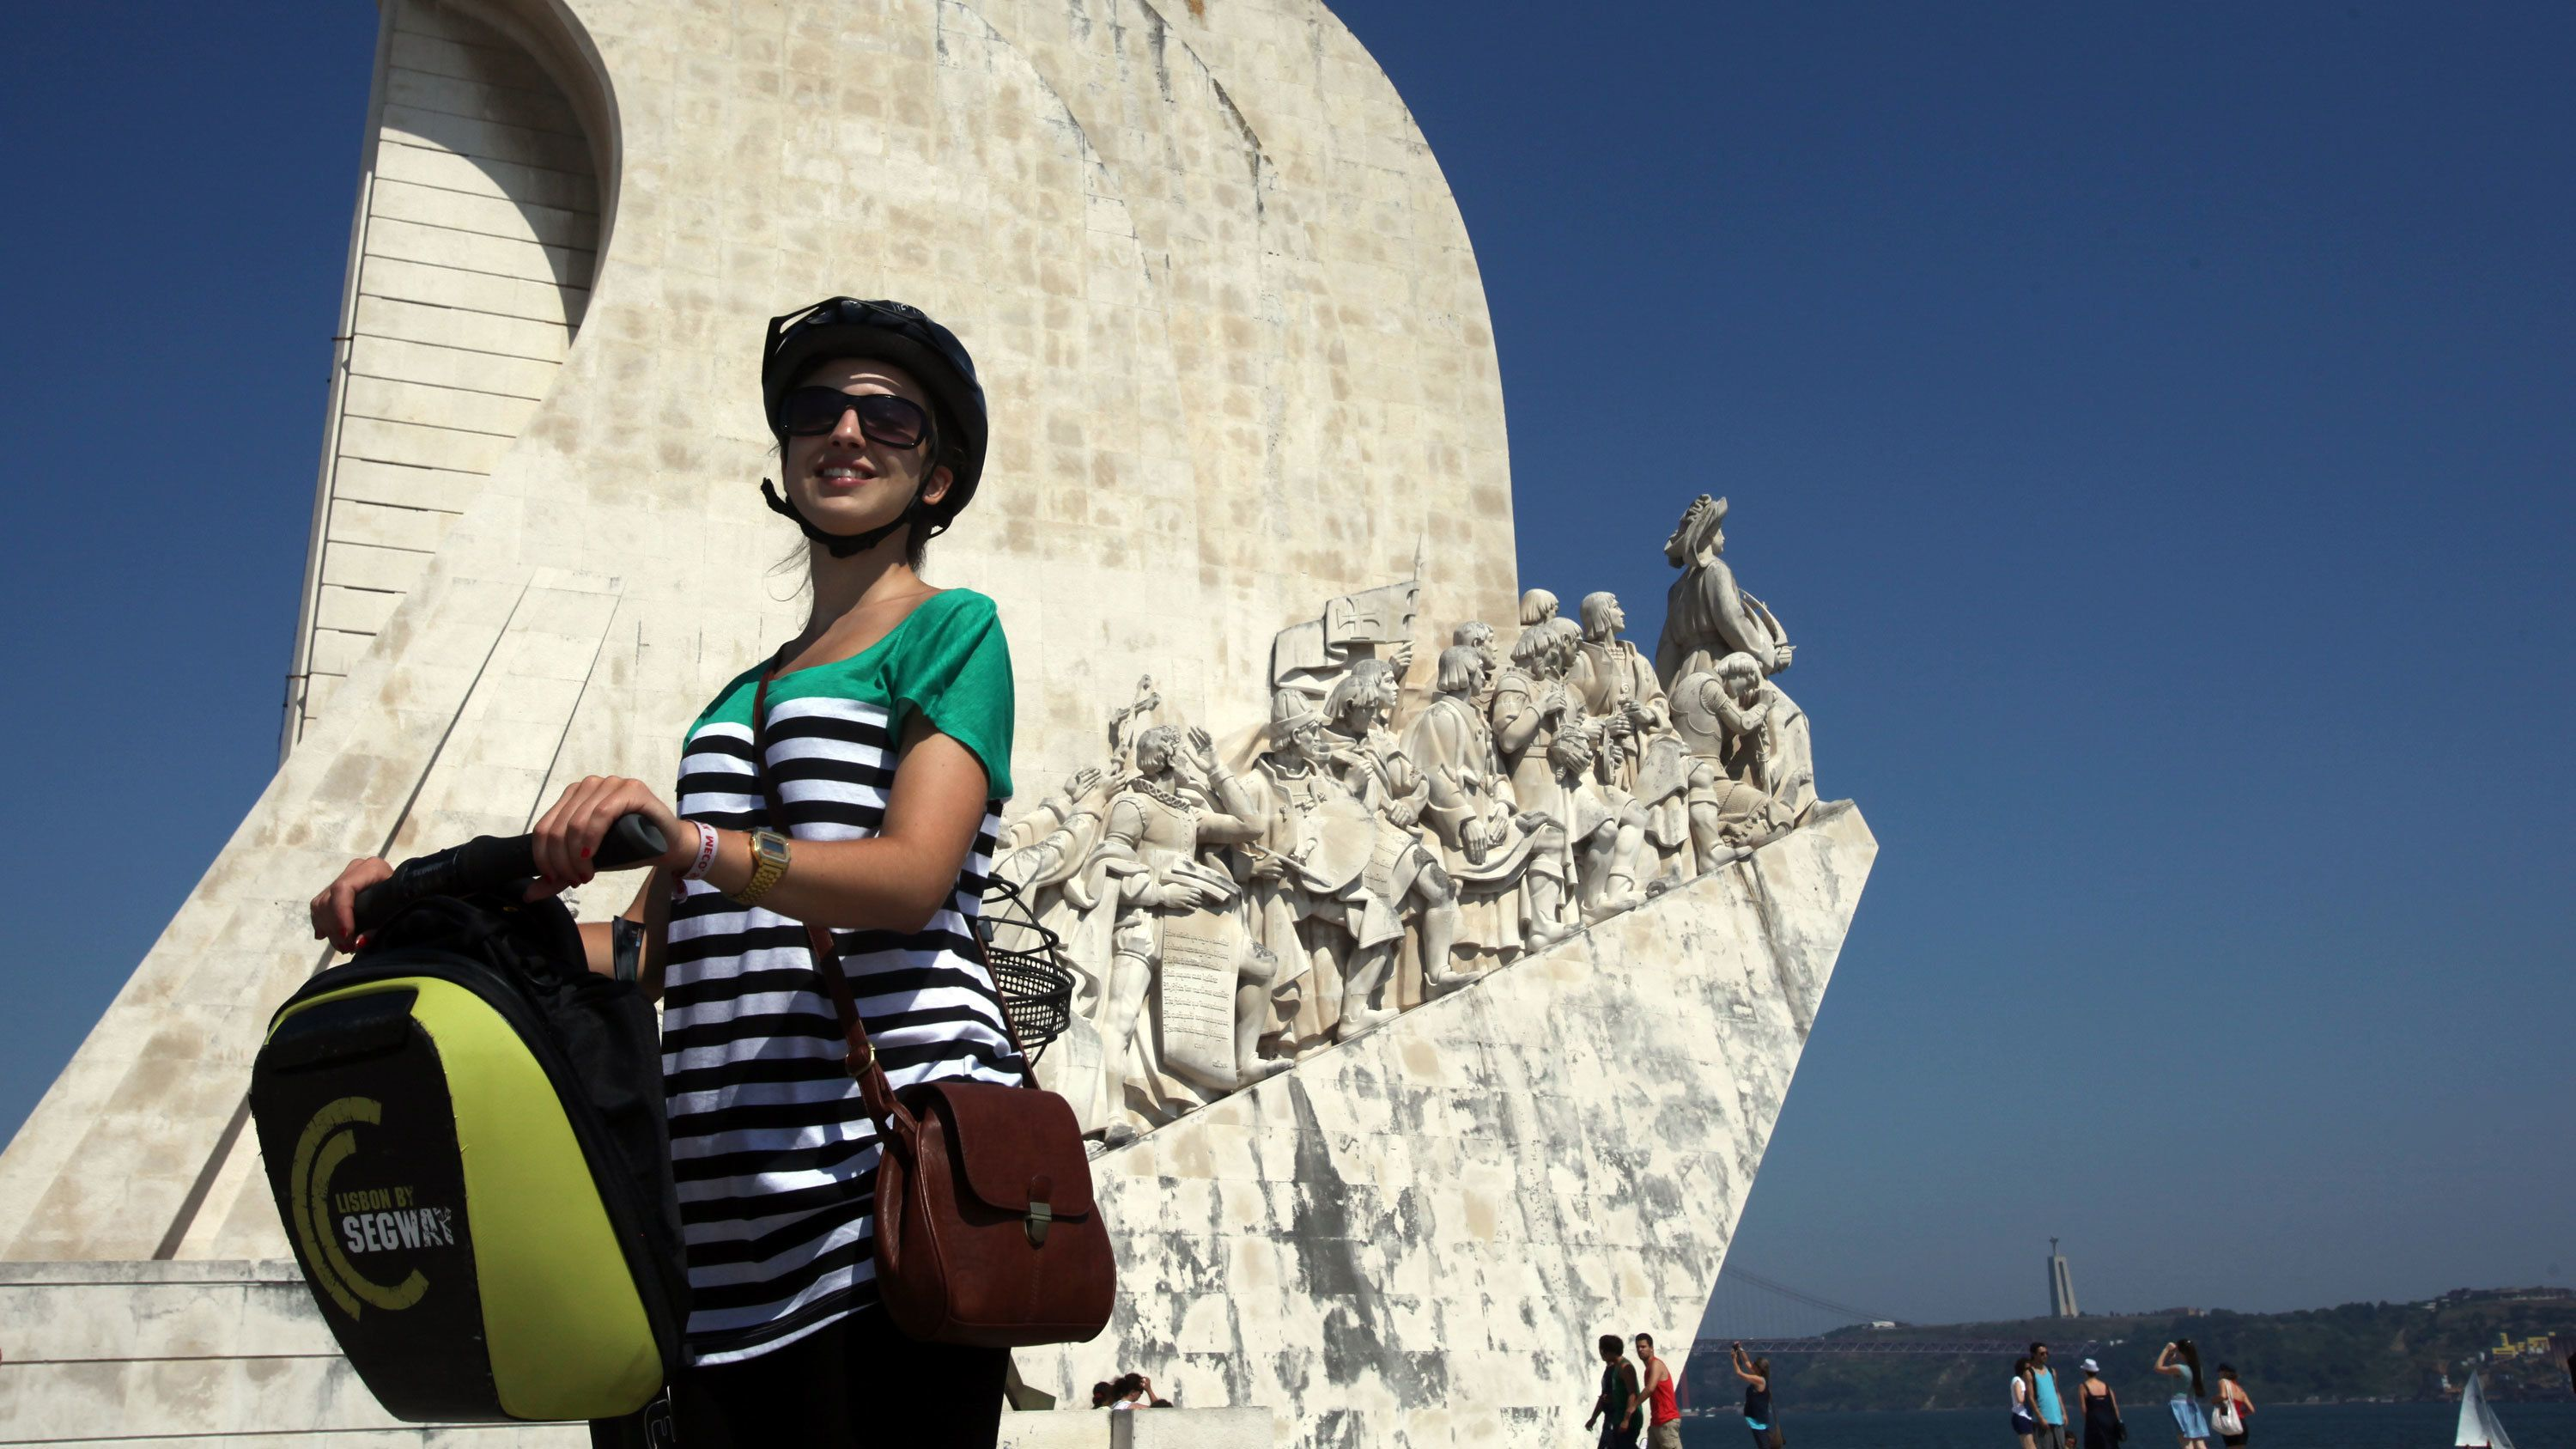 Segway riding woman in front of the Monument to the Discoveries in Lisbon